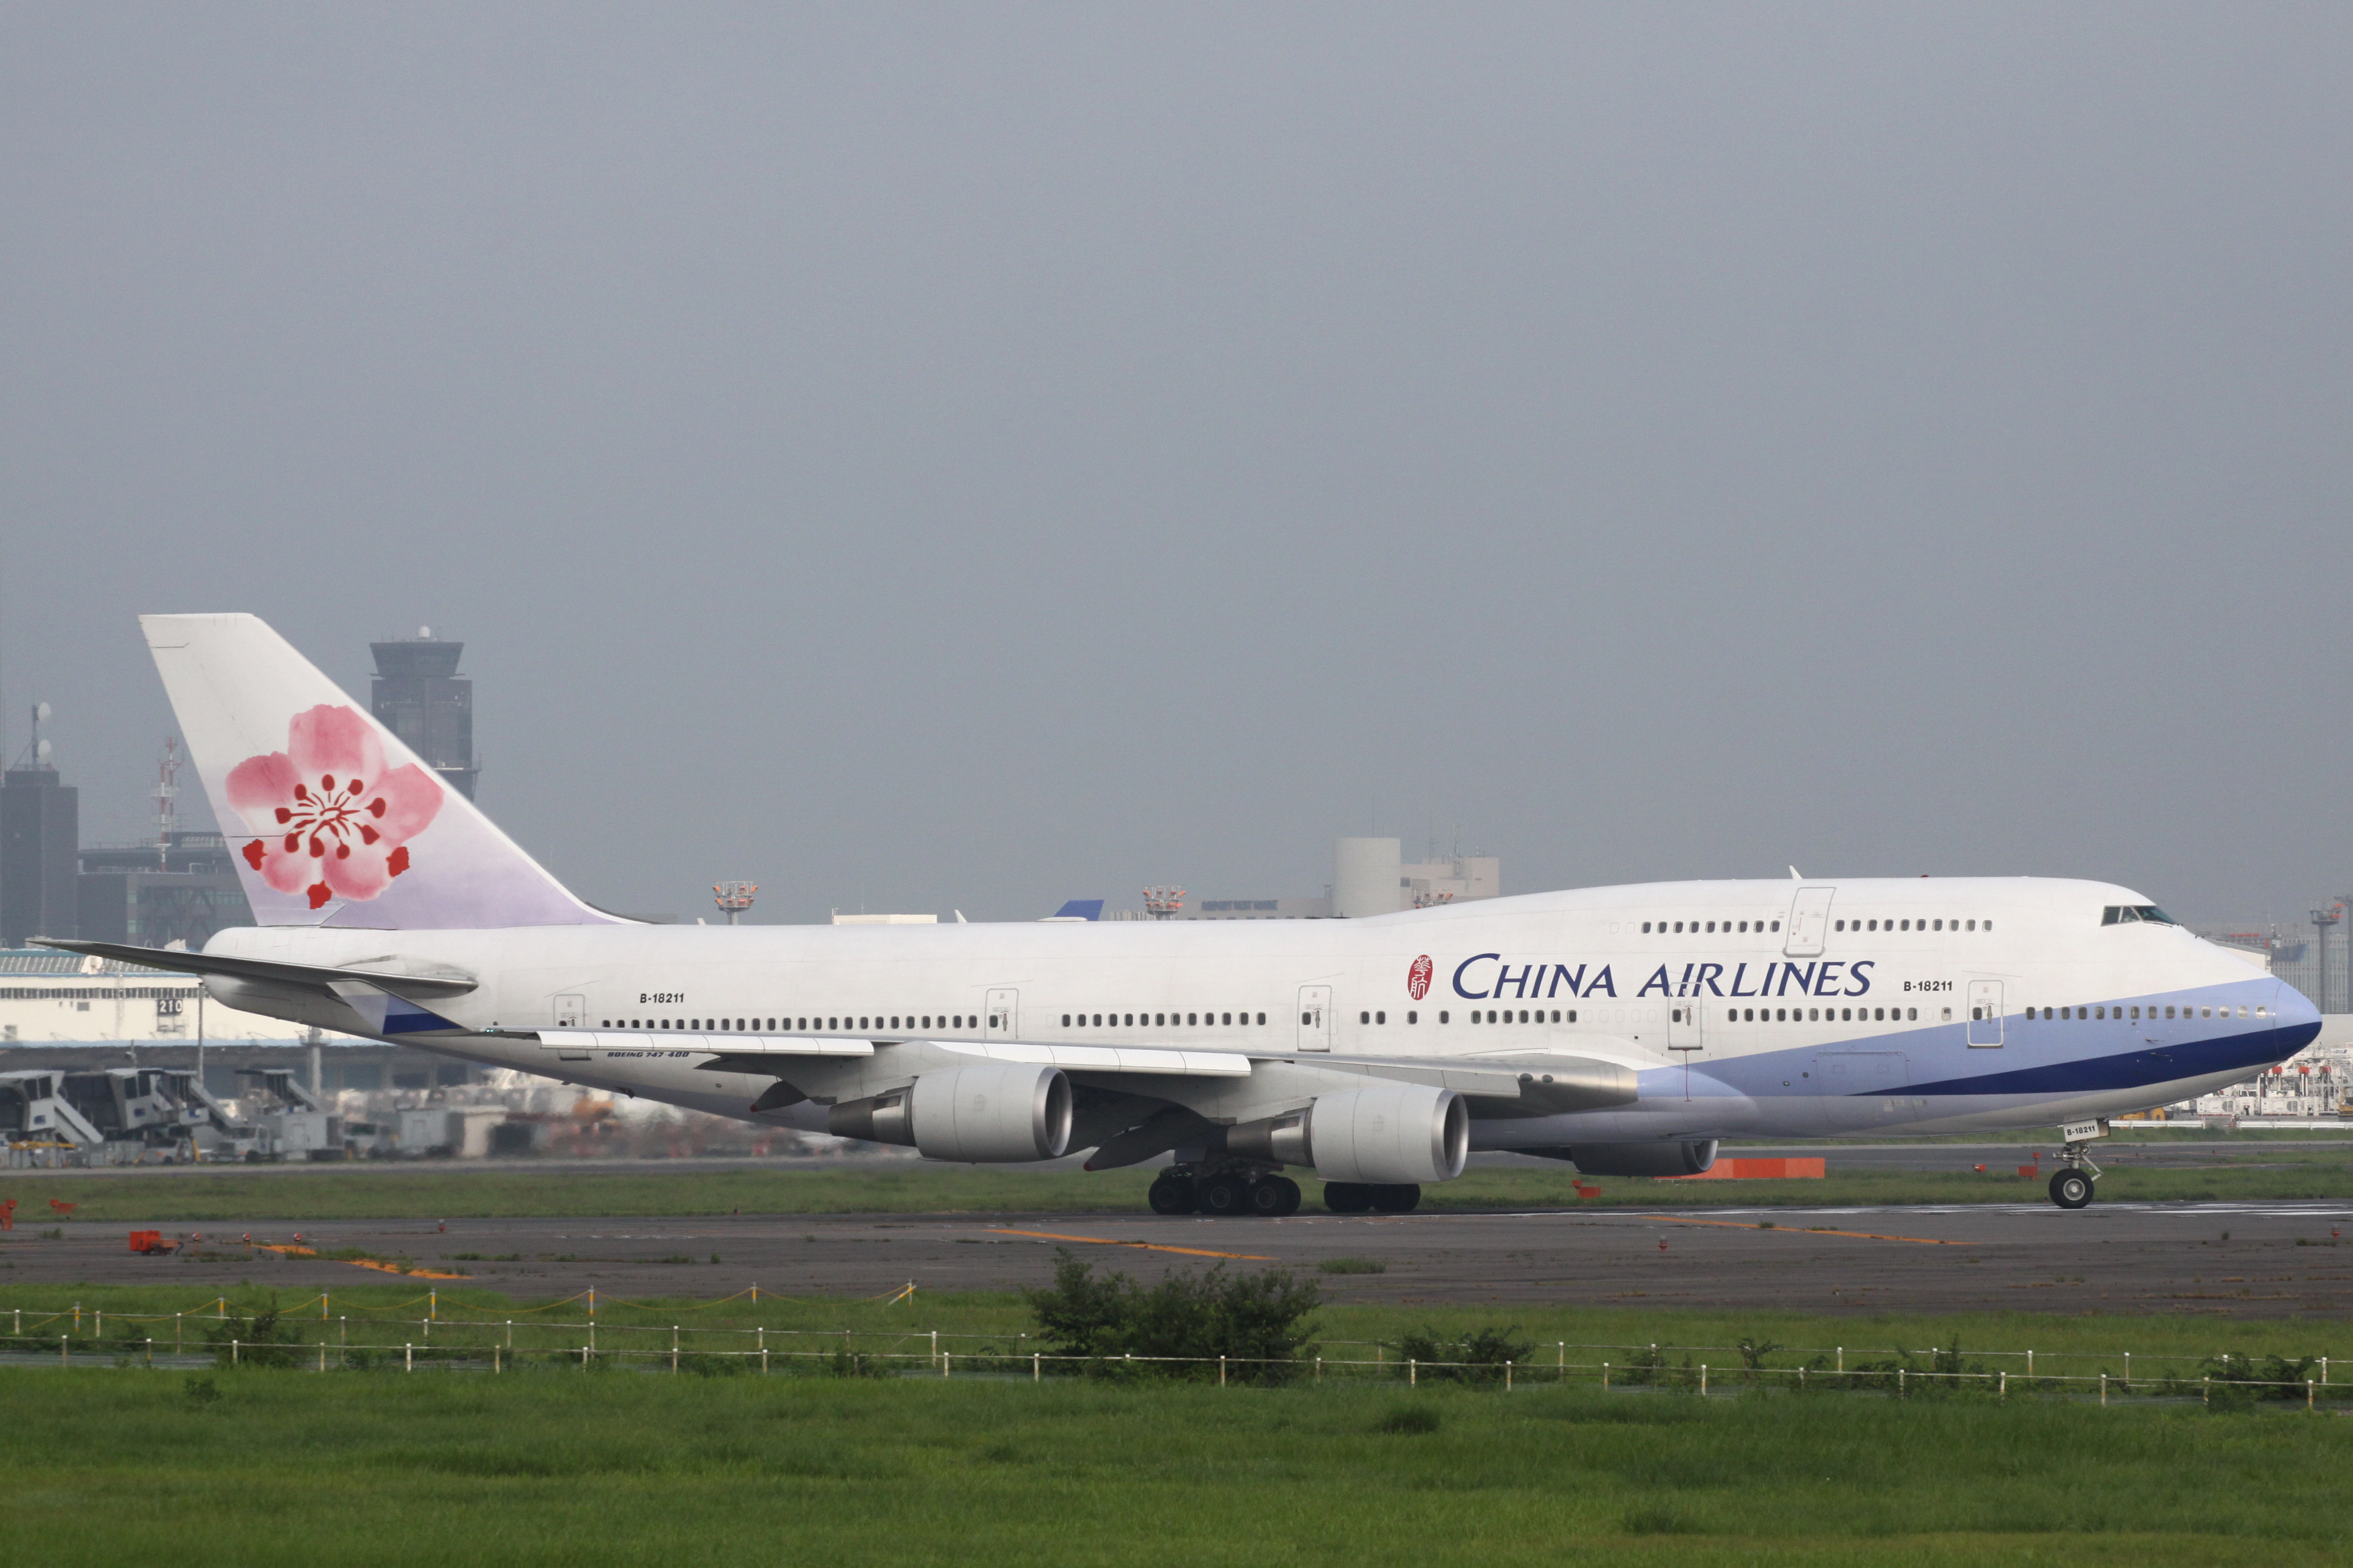 File:China Airlines B747-400(B-18211) (3817190847).